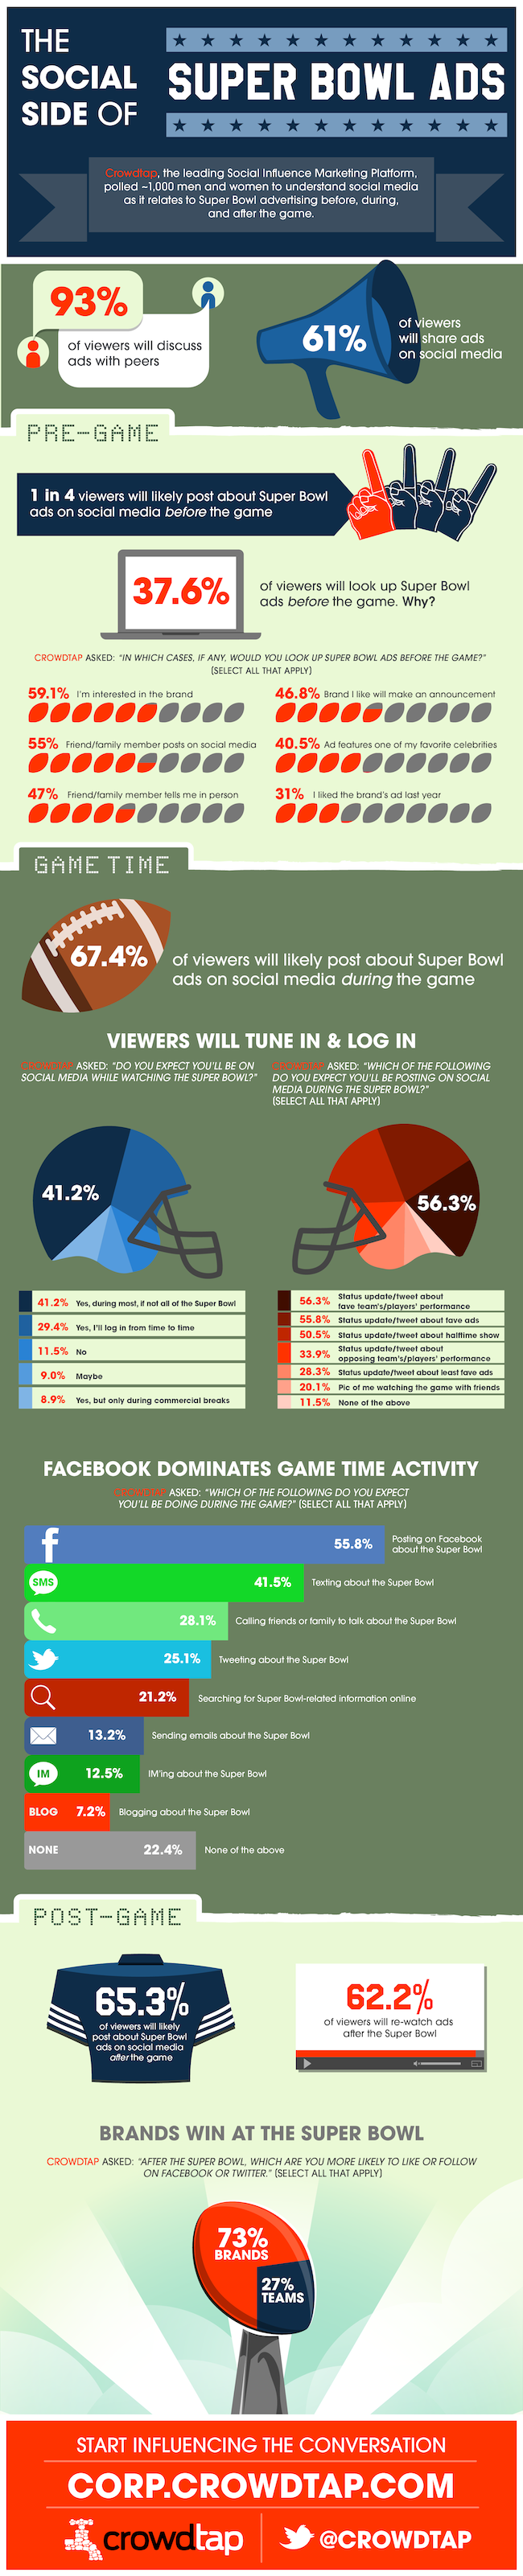 The-Social-Side-of-Super-Bowl-Ads-1 (1)